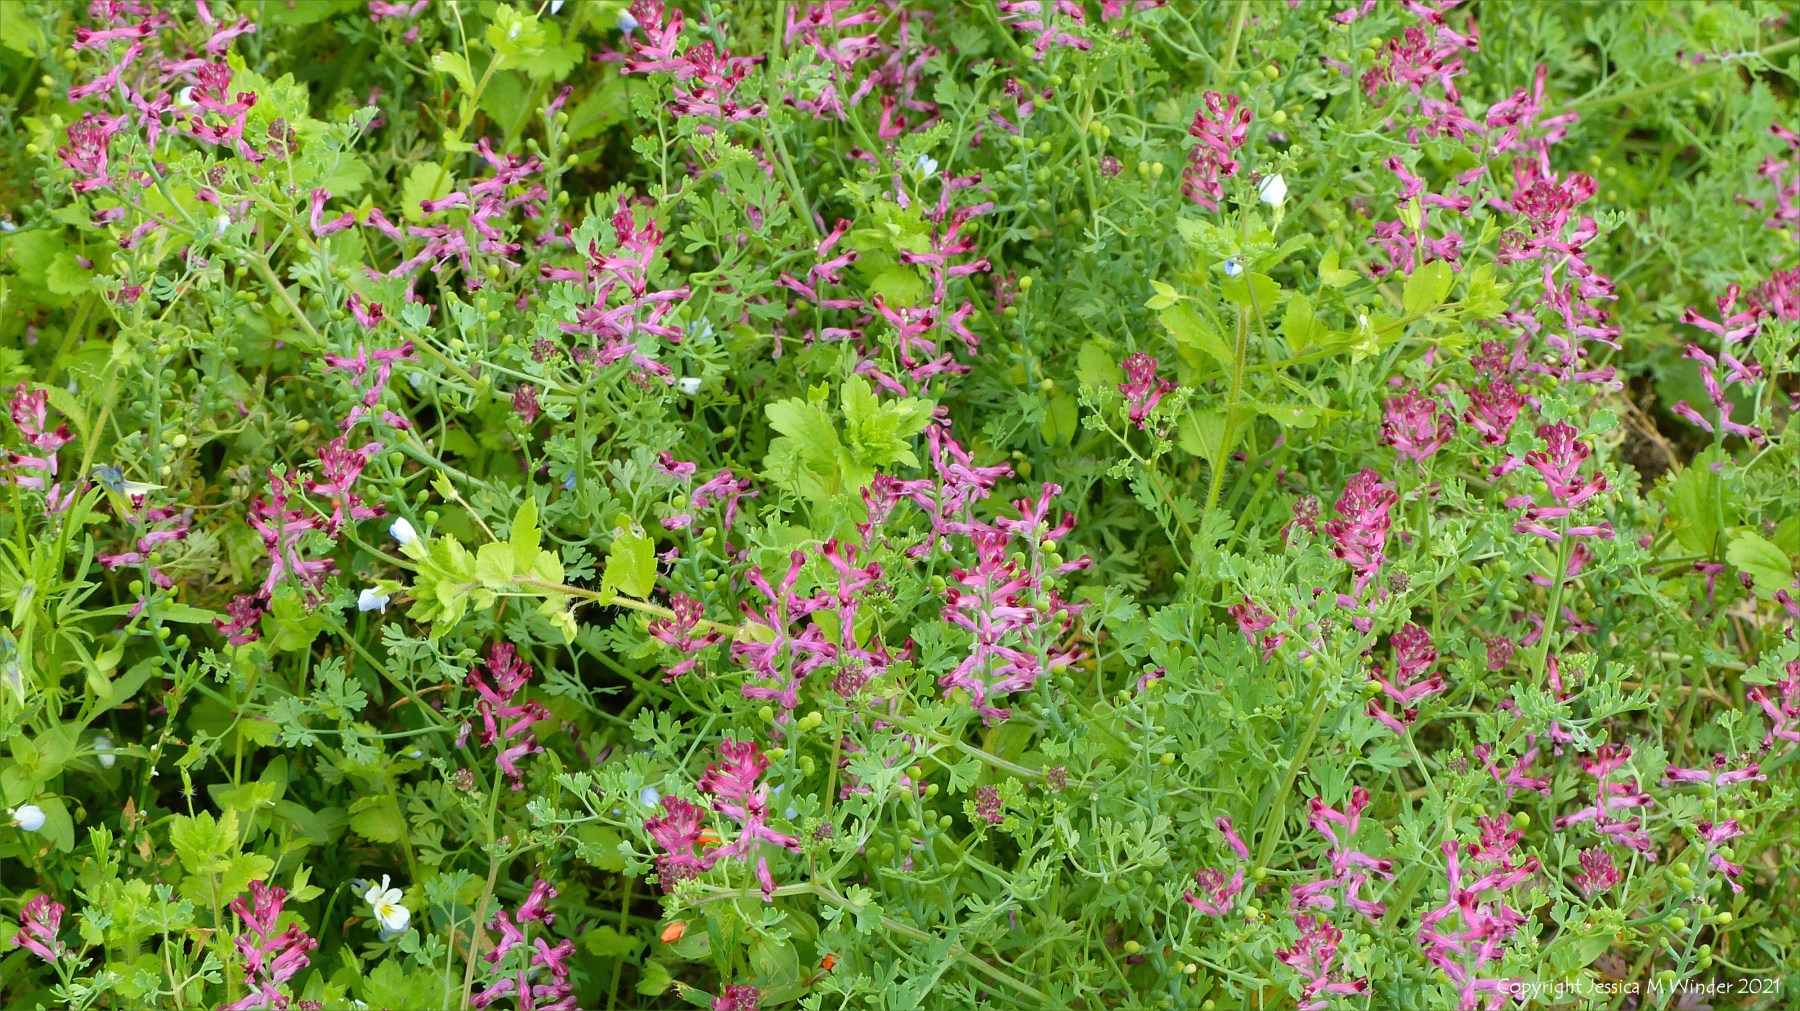 Pink flowers of the arable weed called Common Fumitory